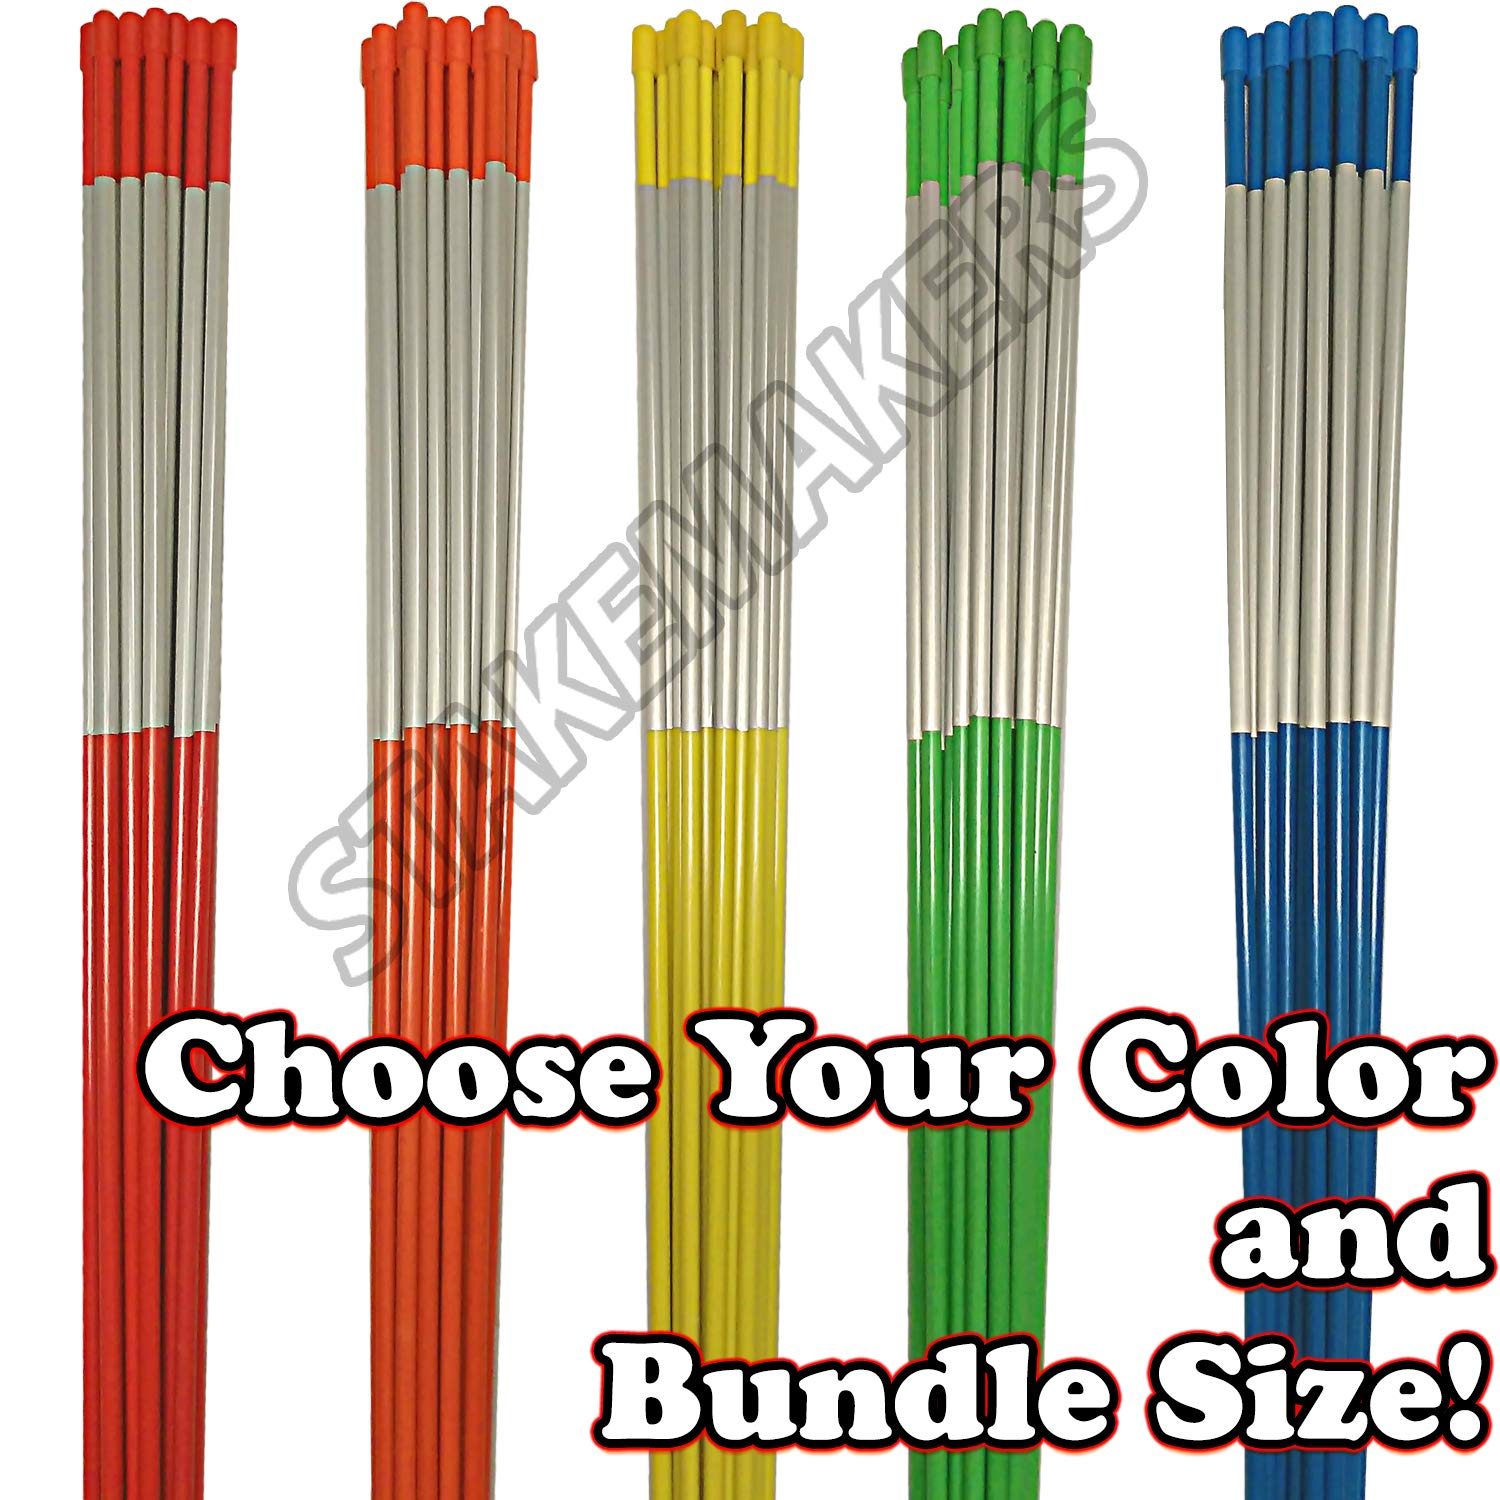 Driveway Markers, Choose Your Bundle Size and Color! | Snow Stakes, Plow Stakes, Fiberglass, Multipack, Reflective Tape, 5/16'', 1/4'' (100, Orange) by Stakemakers